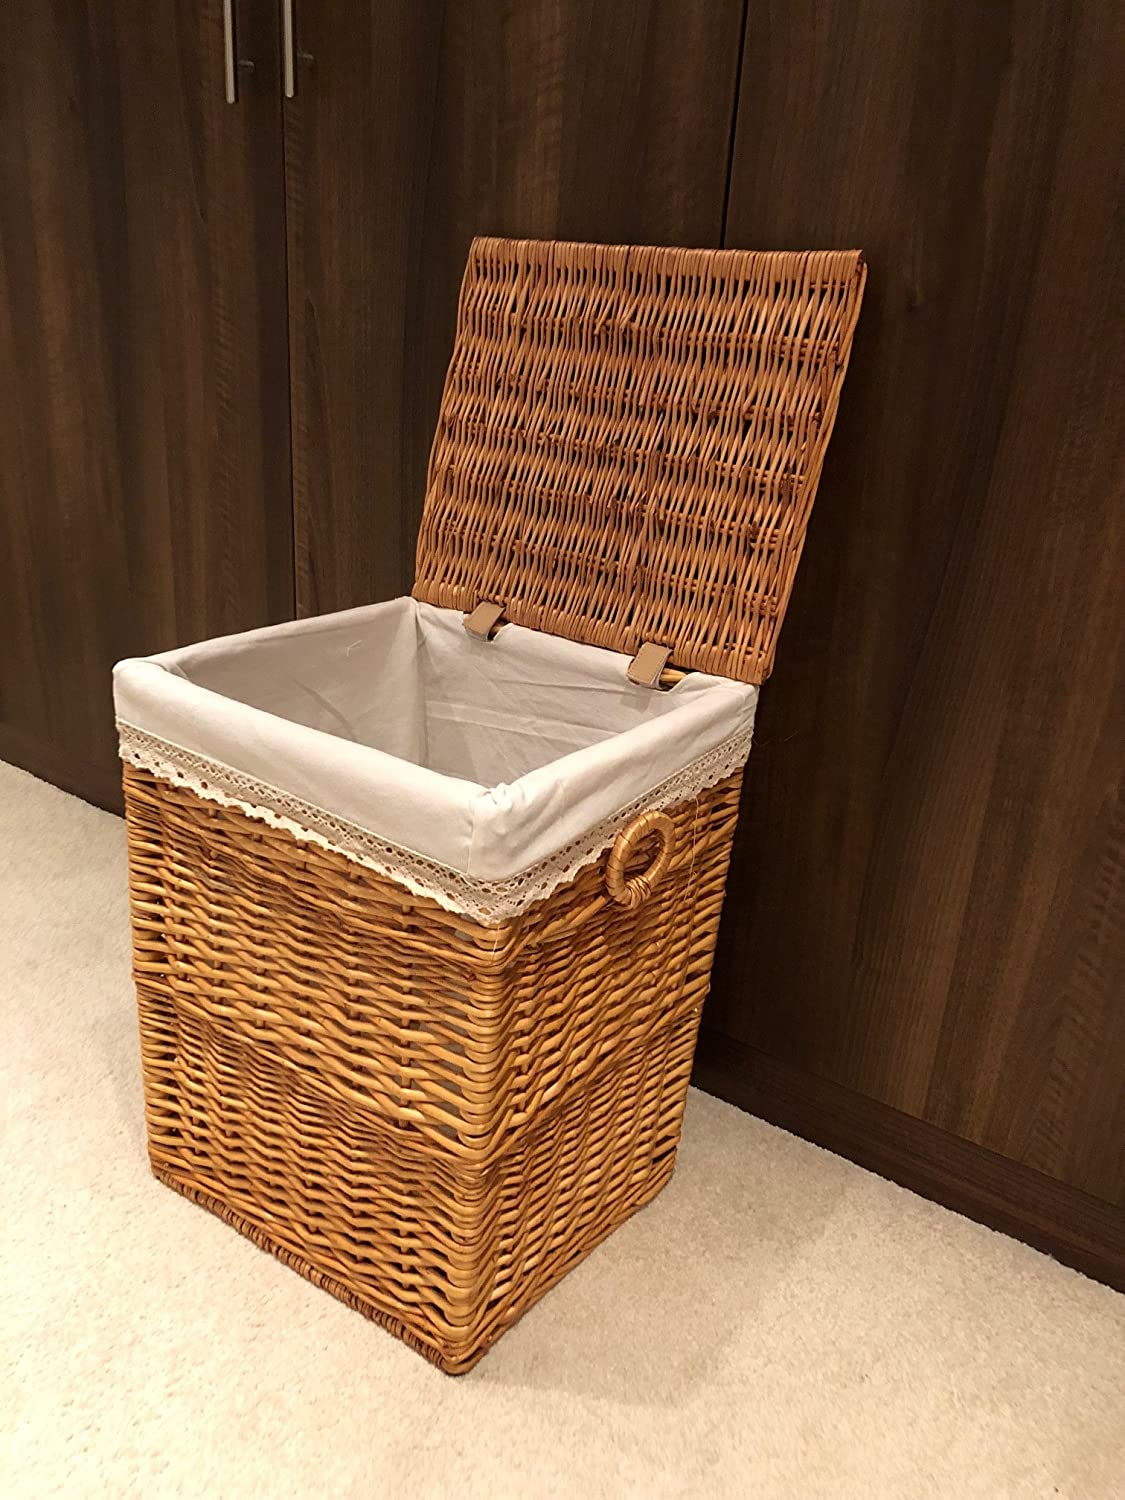 Light Brown Stylish Shabby Chic Rattan Wicker Laundry Baskets Storage Bedroom Medium Amazon Co Uk Kitchen Home